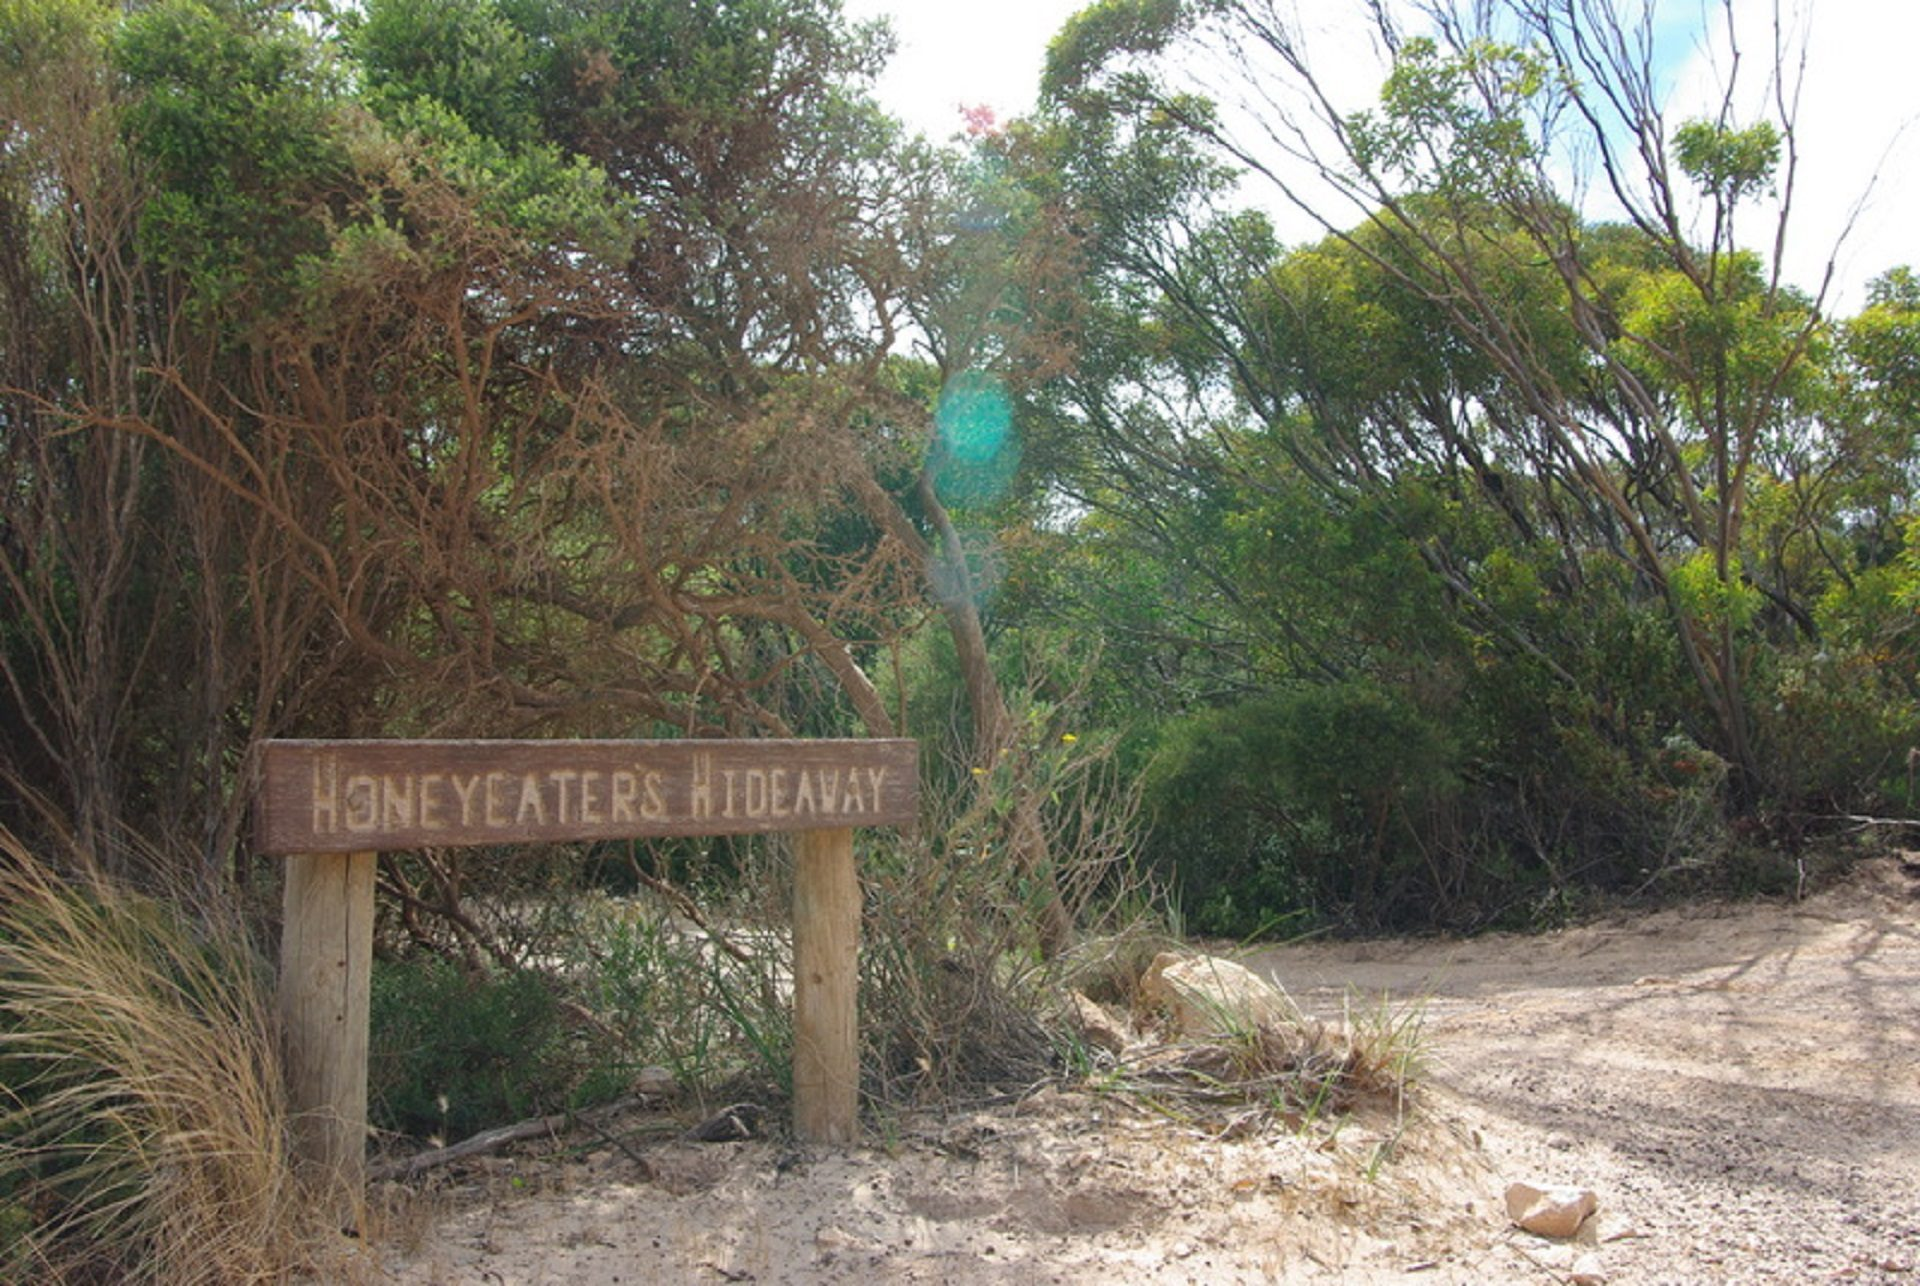 Honeyeaters Hideaway in Vivonne Bay